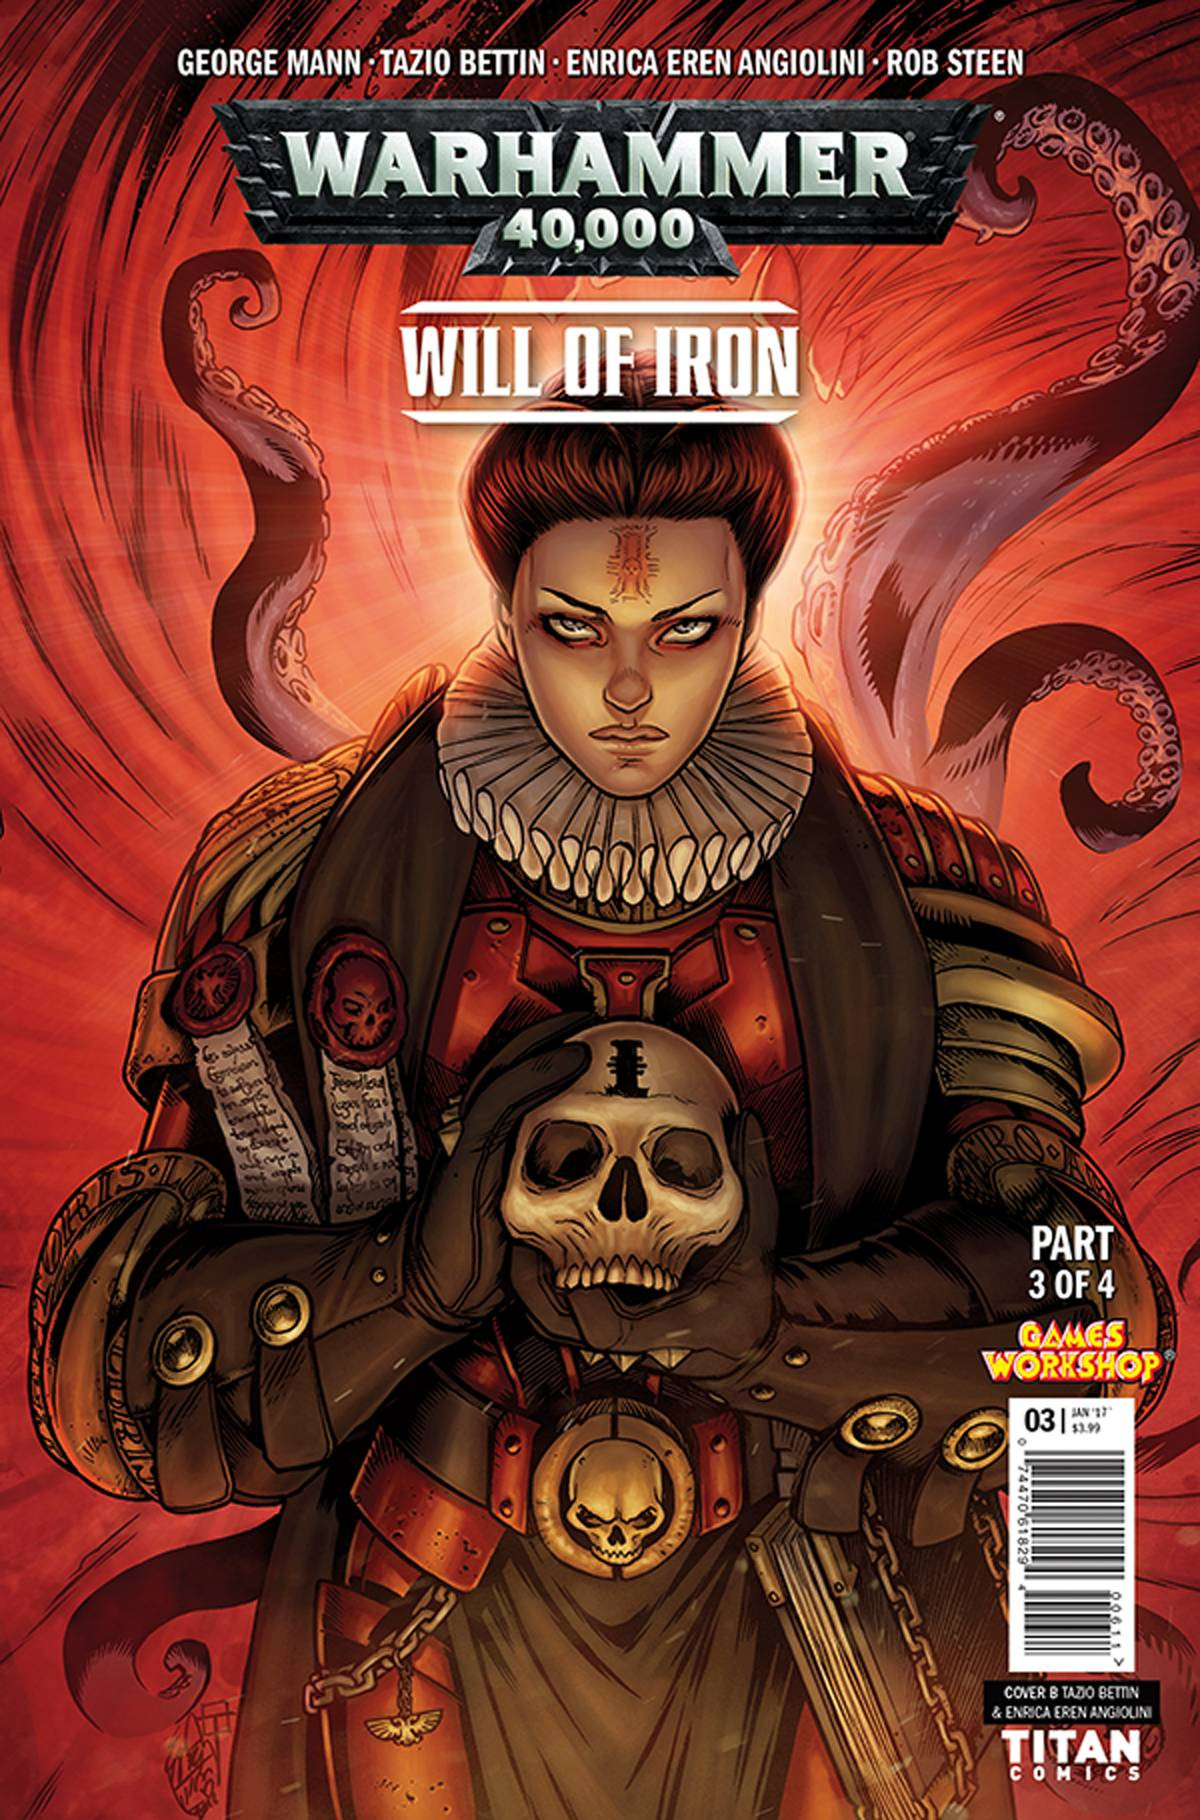 WARHAMMER 40,000 WILL OF IRON #3: Variant Cover 3